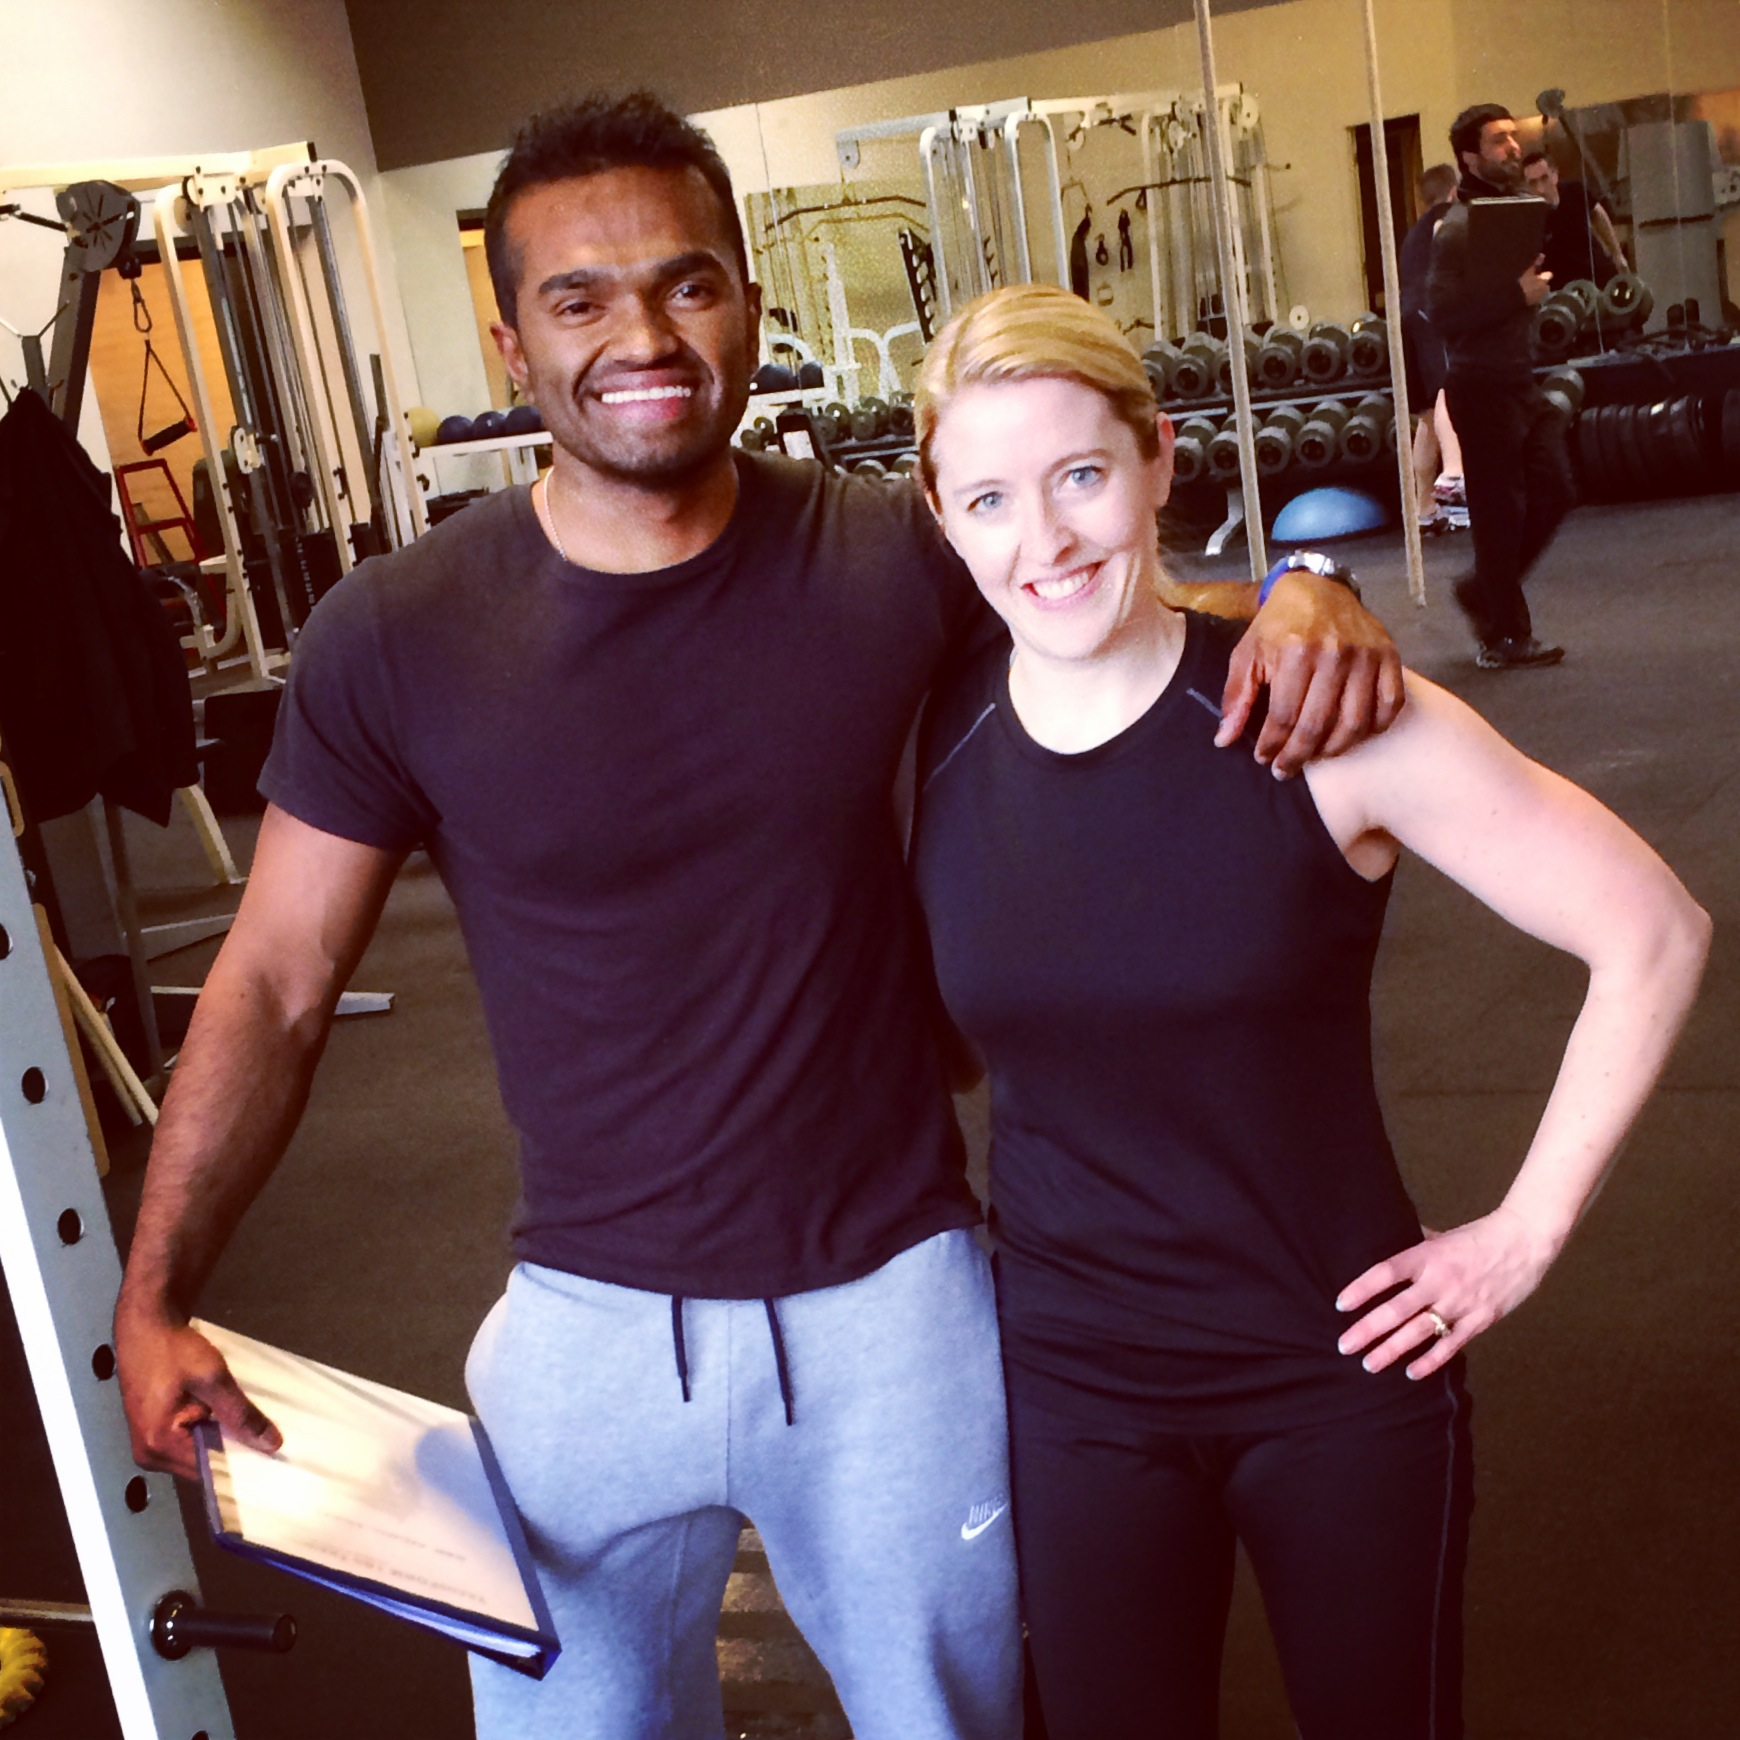 """I've been training with Charith at TransFORM 180 for about 3 months.  I'm almost 40 and am now stronger than I've ever been in my life.  He listens to my fitness goals and tailors the program to fit my needs.  He is also very good at findng my weaker areas to work on.  He is really knowledgable and encouraging.  Moreover, I have a great time working hard and learning every hour we train together.    Charith has developed a whole fitness philosophy including strength, cardio, diet/nutrition, and rest that accomplishes a healthy lifestyle.  He weaves this philosophy into the each of his programs. I highly recommend this trainer - you'll love the process and the results.""   -Merideth Randles (Seattle, WA)"